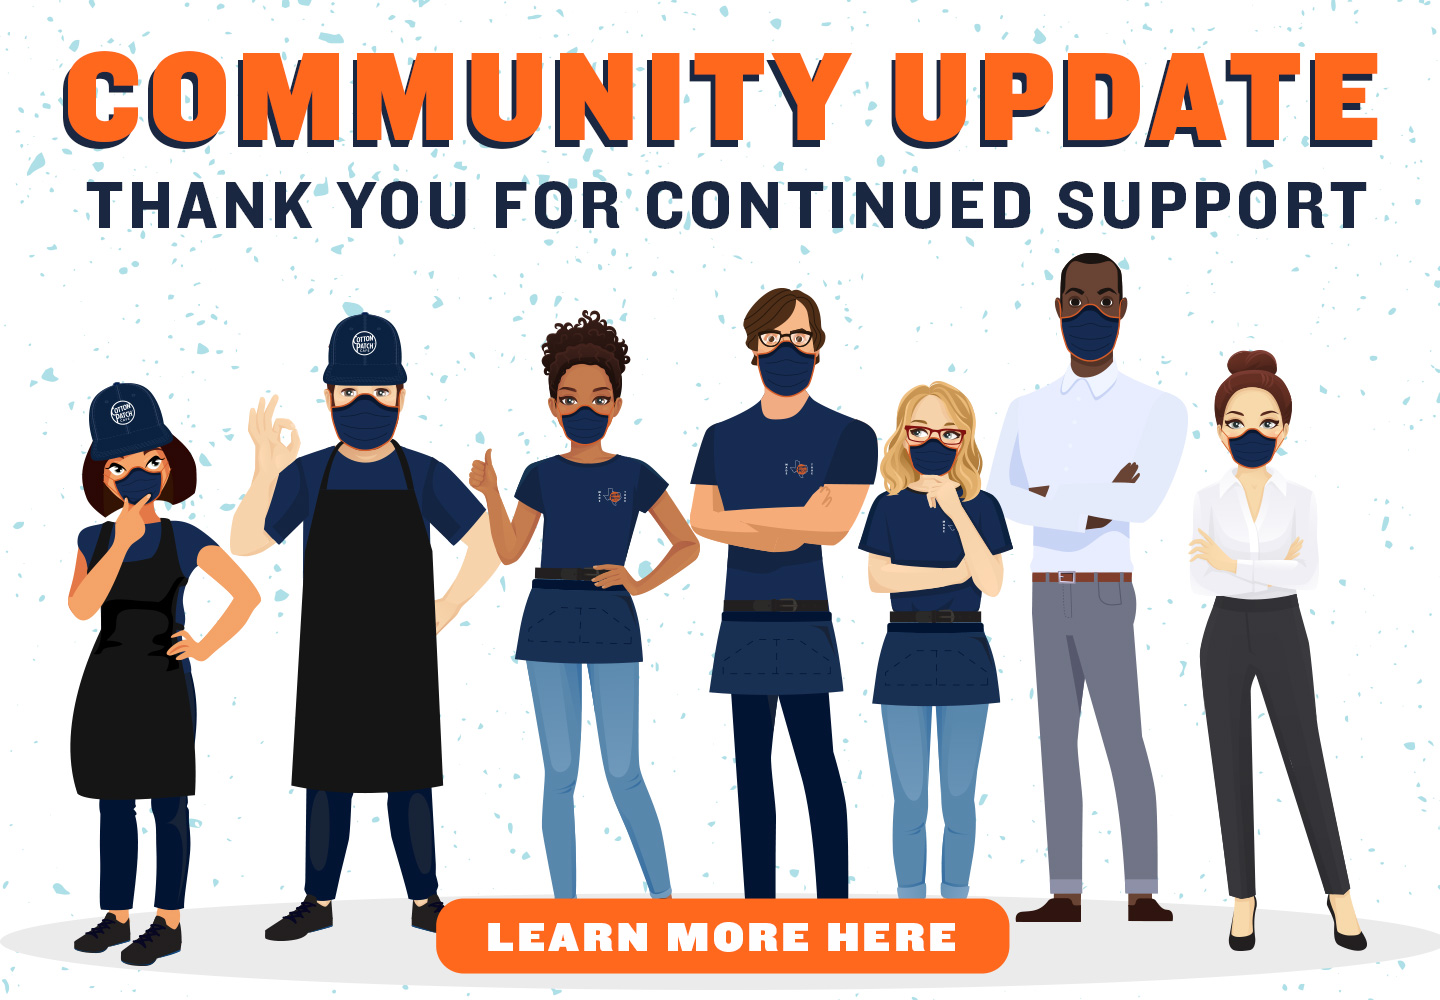 Community Update: Thank you for continued support!